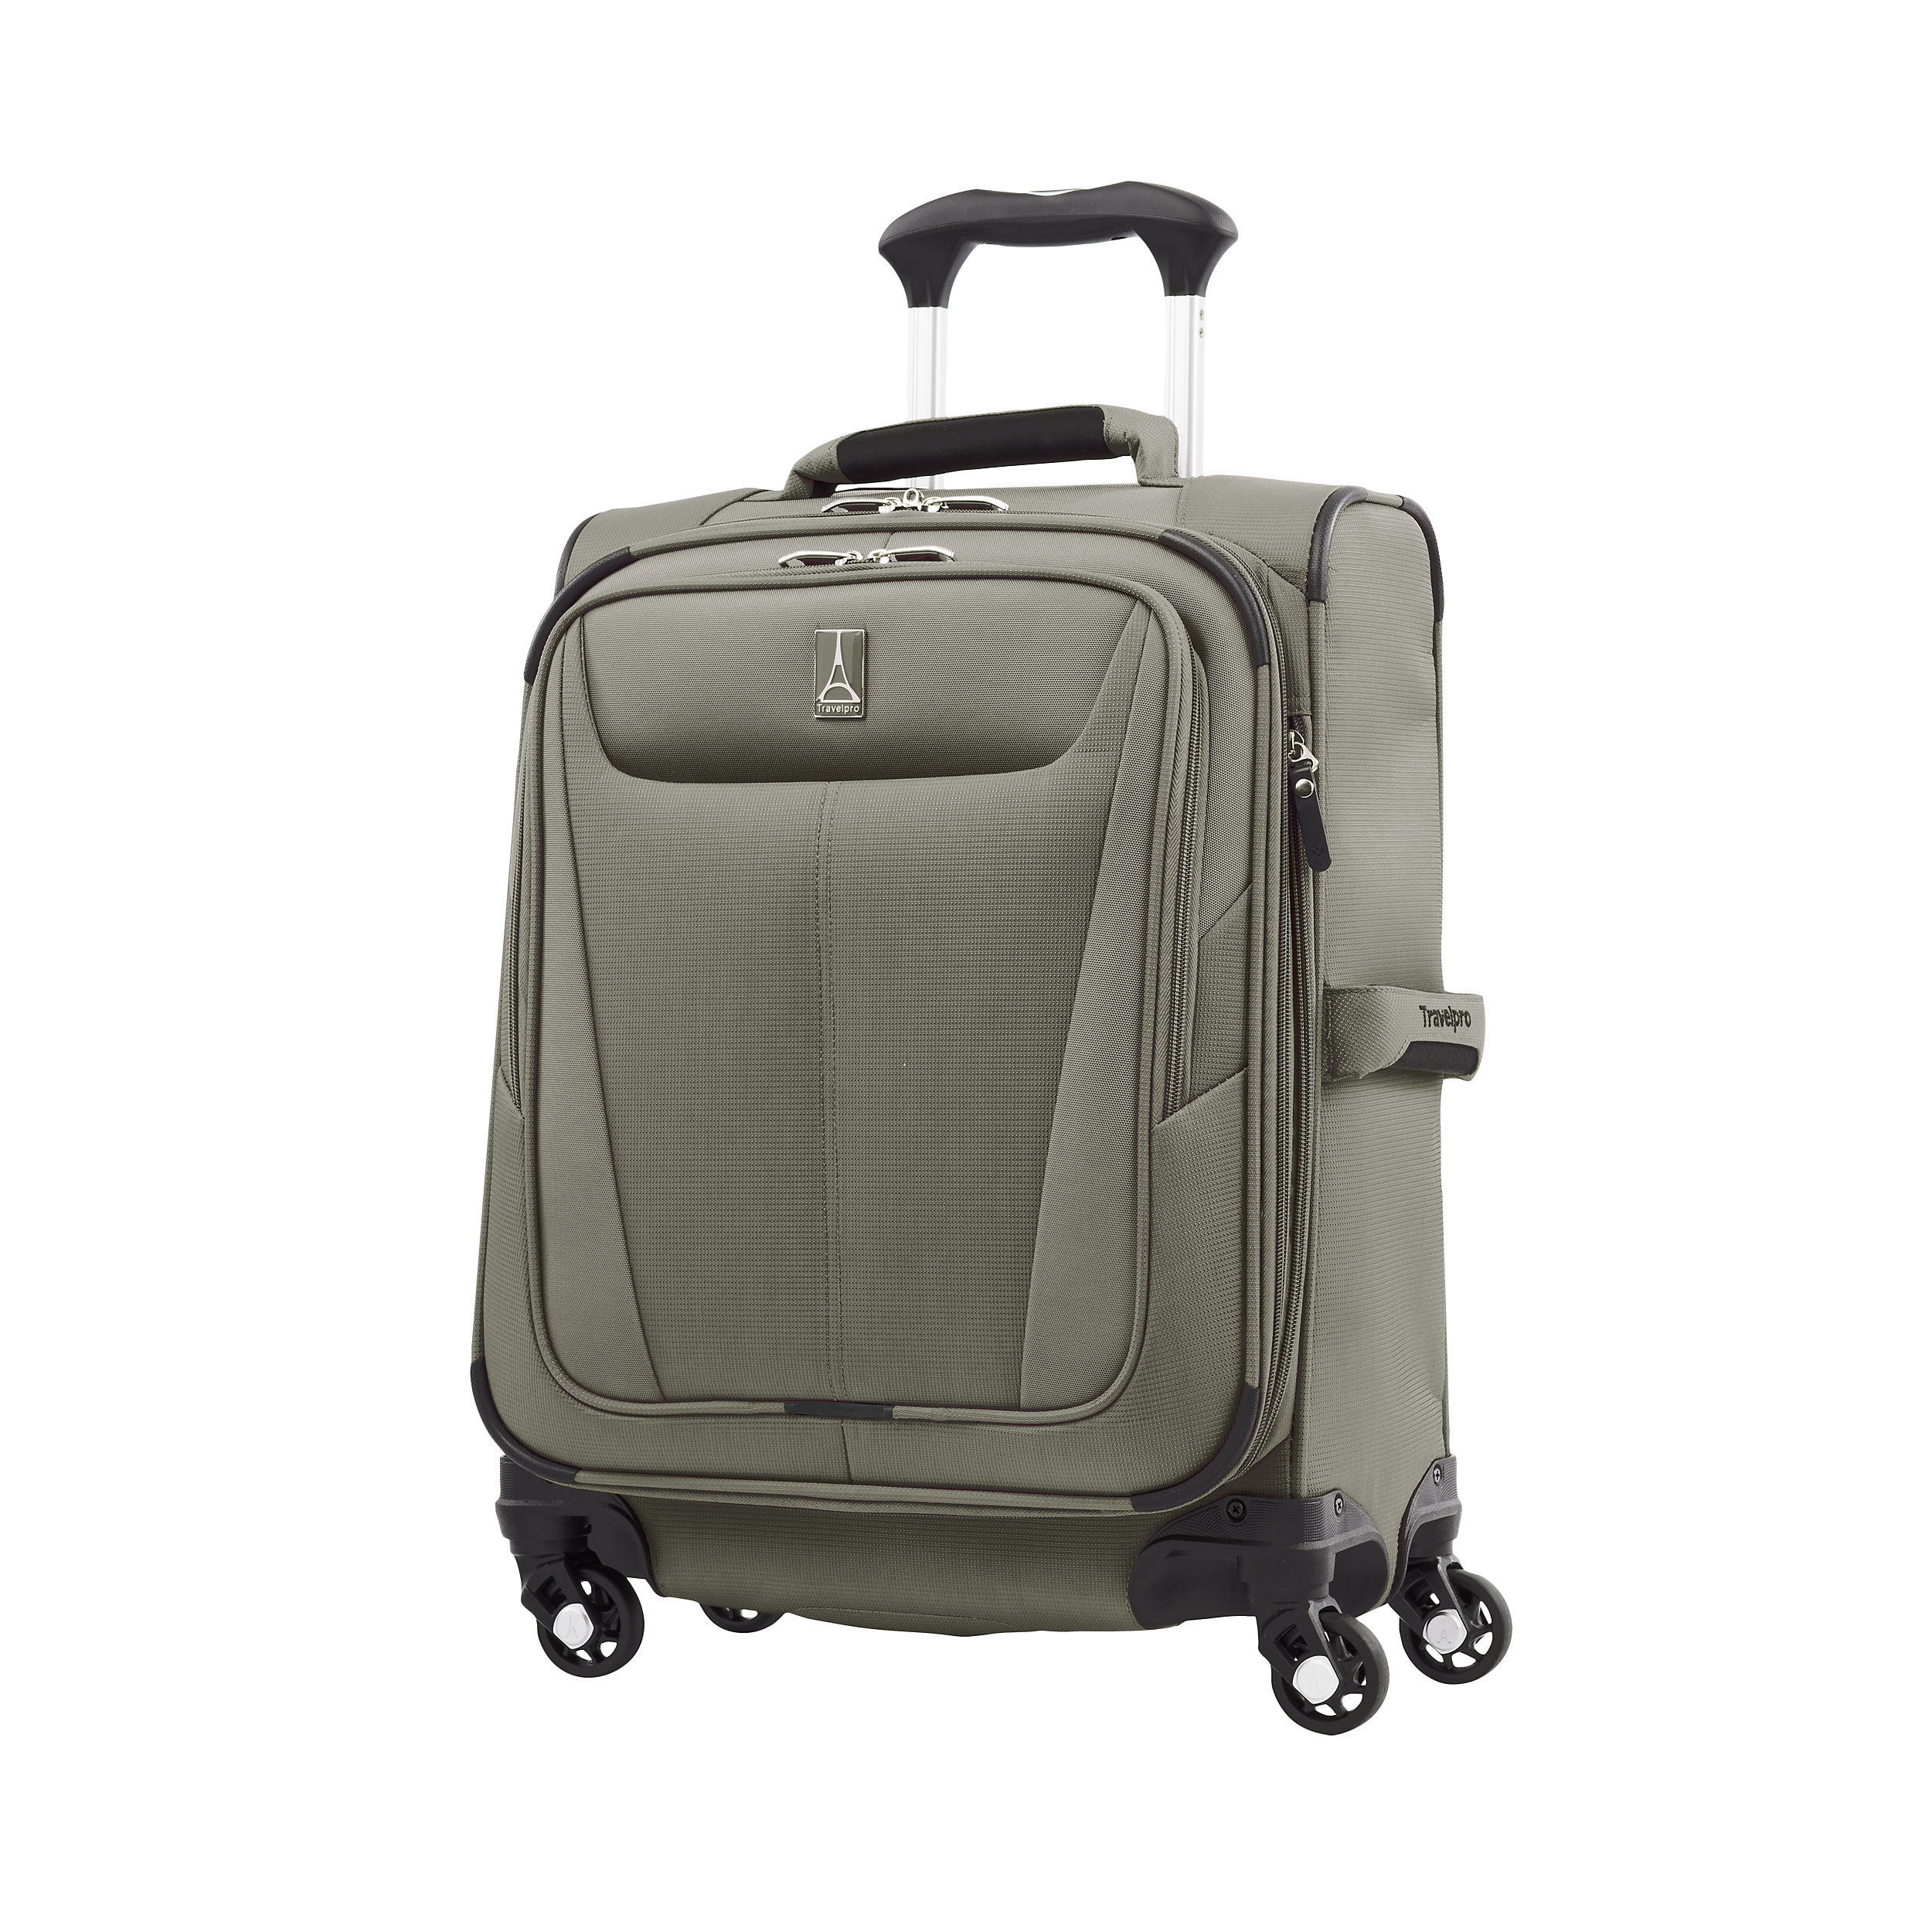 Carry-on with 4 wheels 55 cm Slim Expandable Maxlite 5 39 Liter